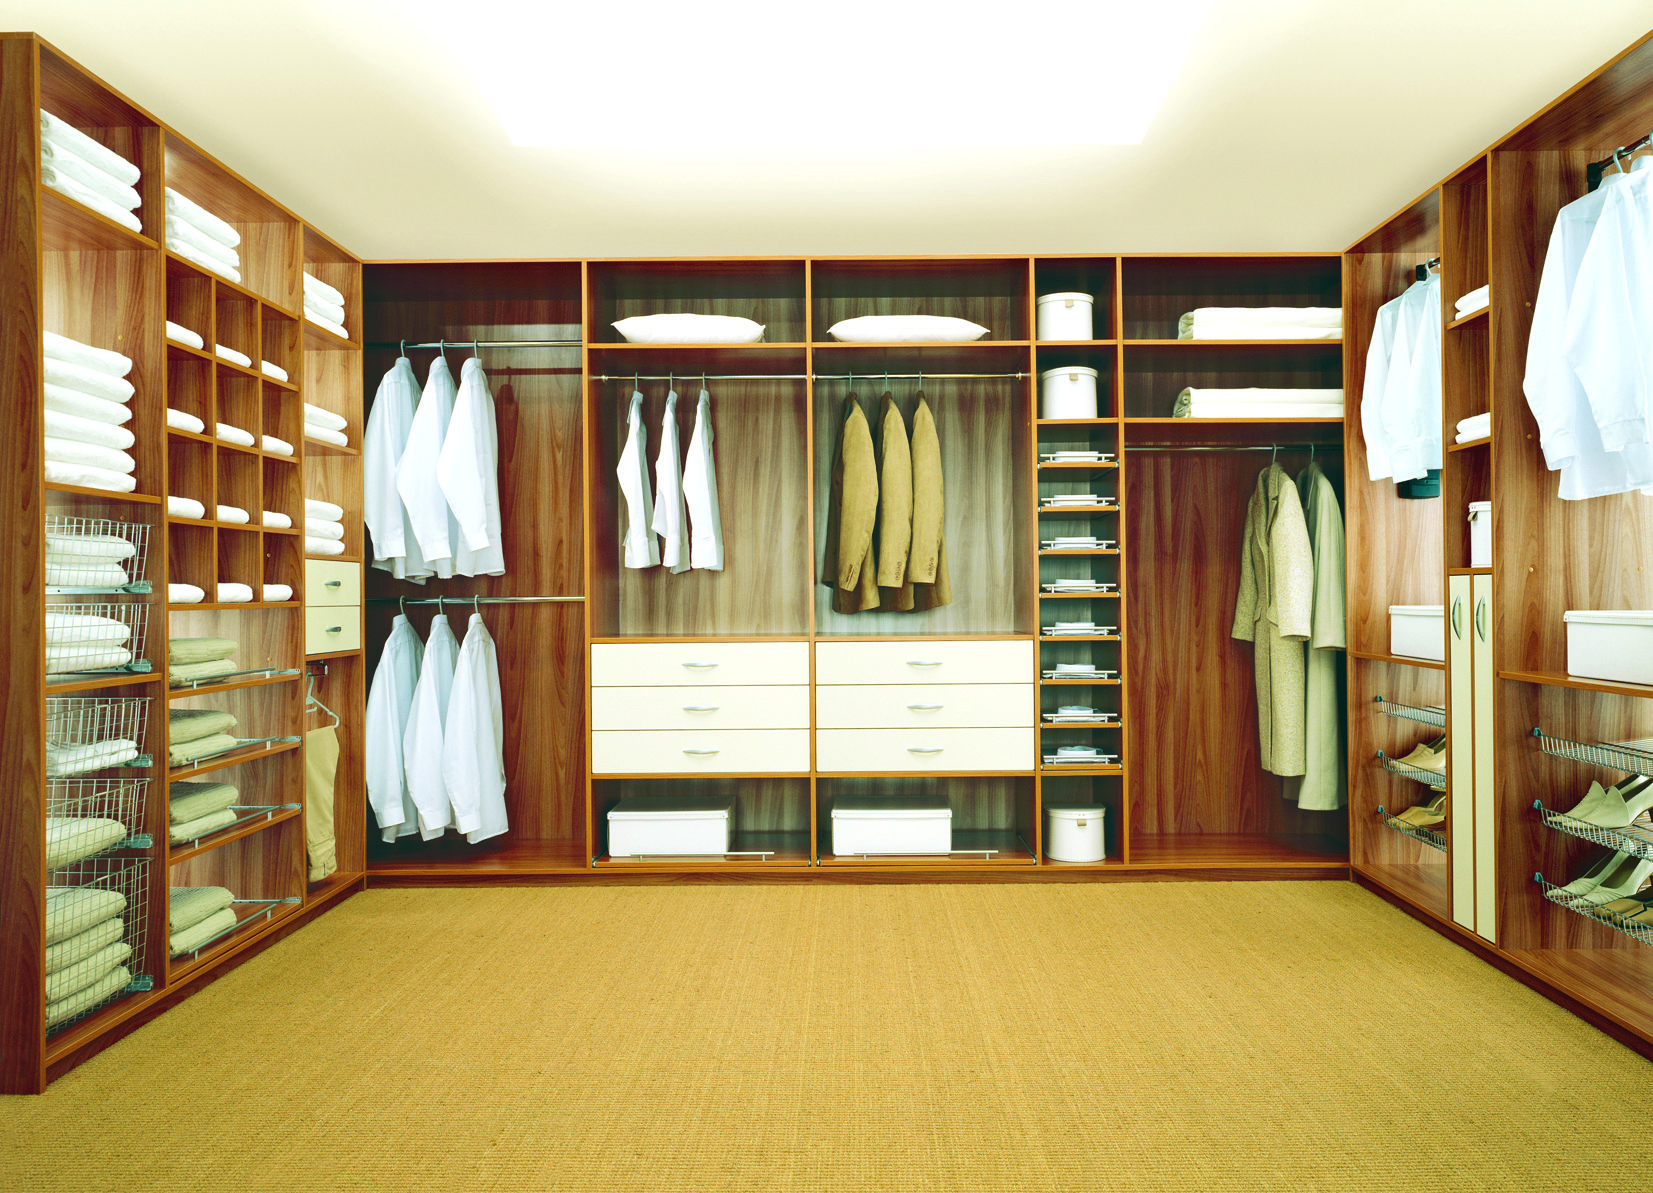 1000 images about walk in closet ideas on pinterest walk in closet closet and master closet